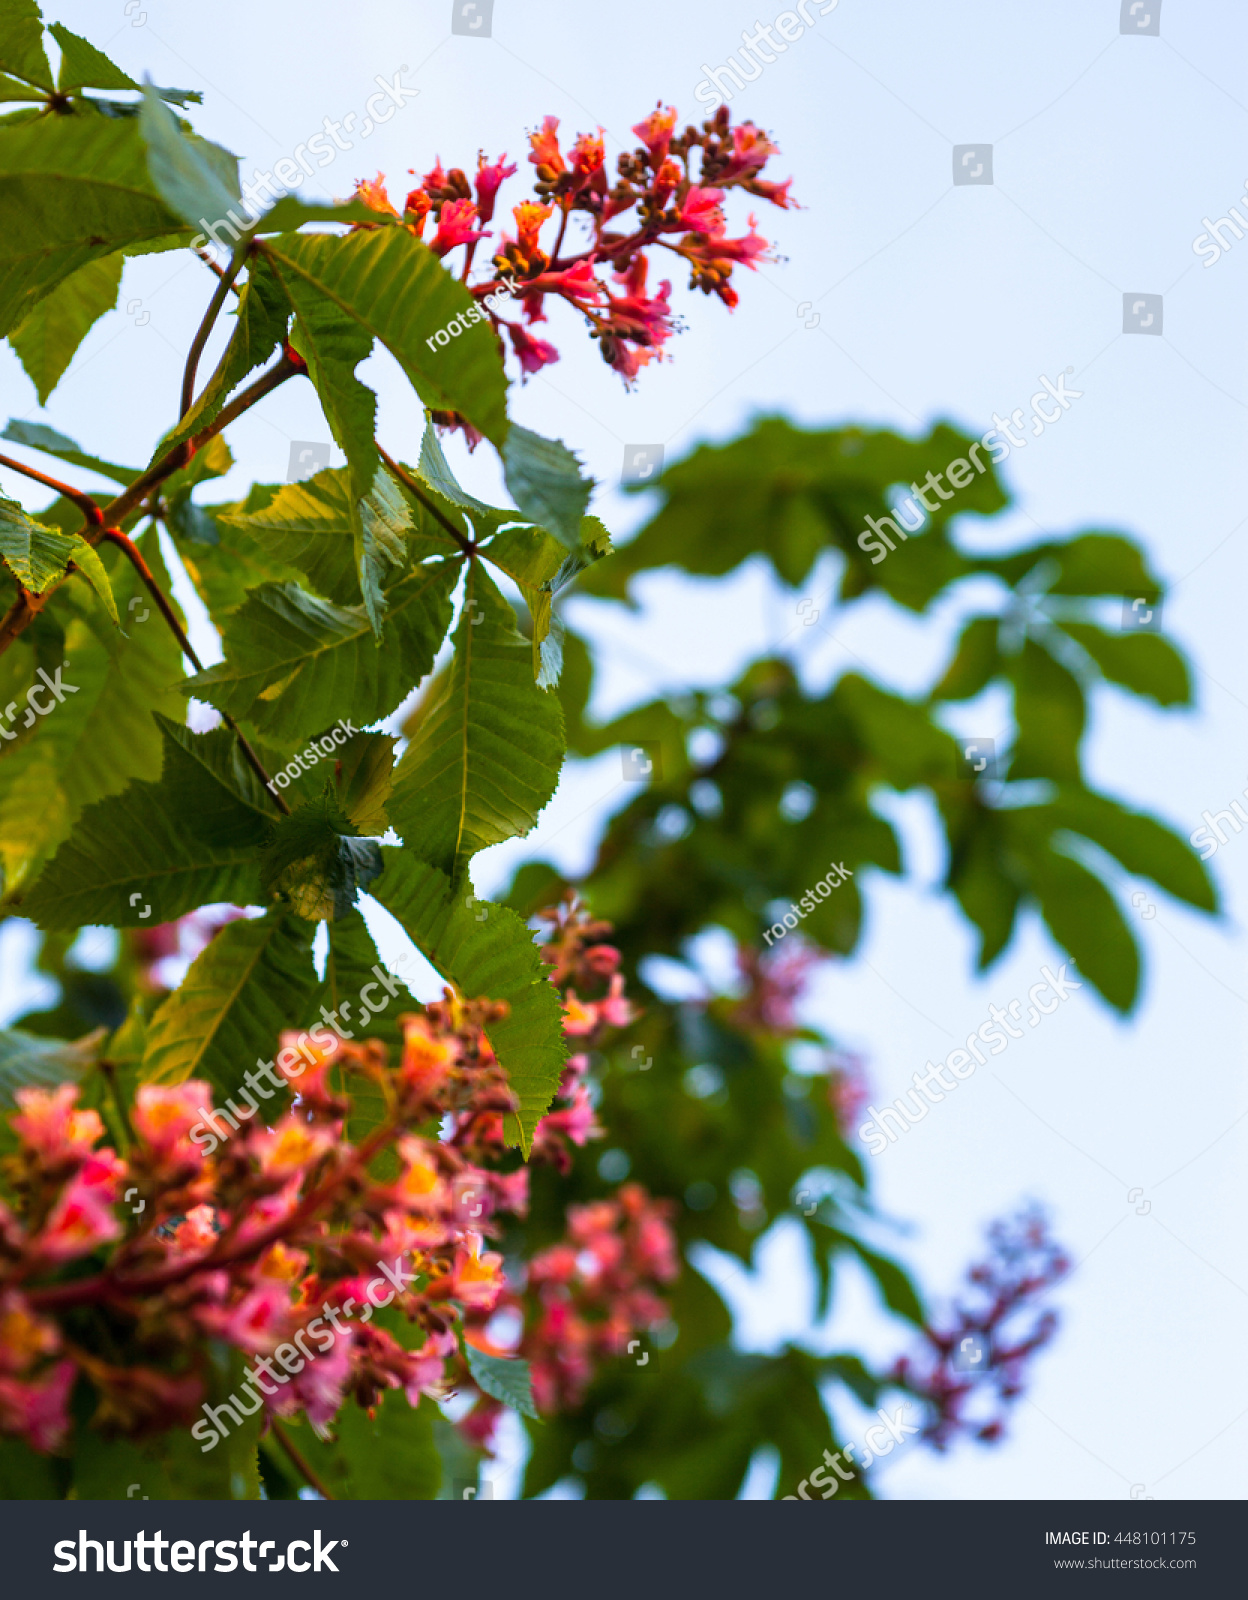 Bunches pink flowers horsechestnut tree against stock photo bunches of pink flowers of the horse chestnut tree against the blue sky mightylinksfo Gallery